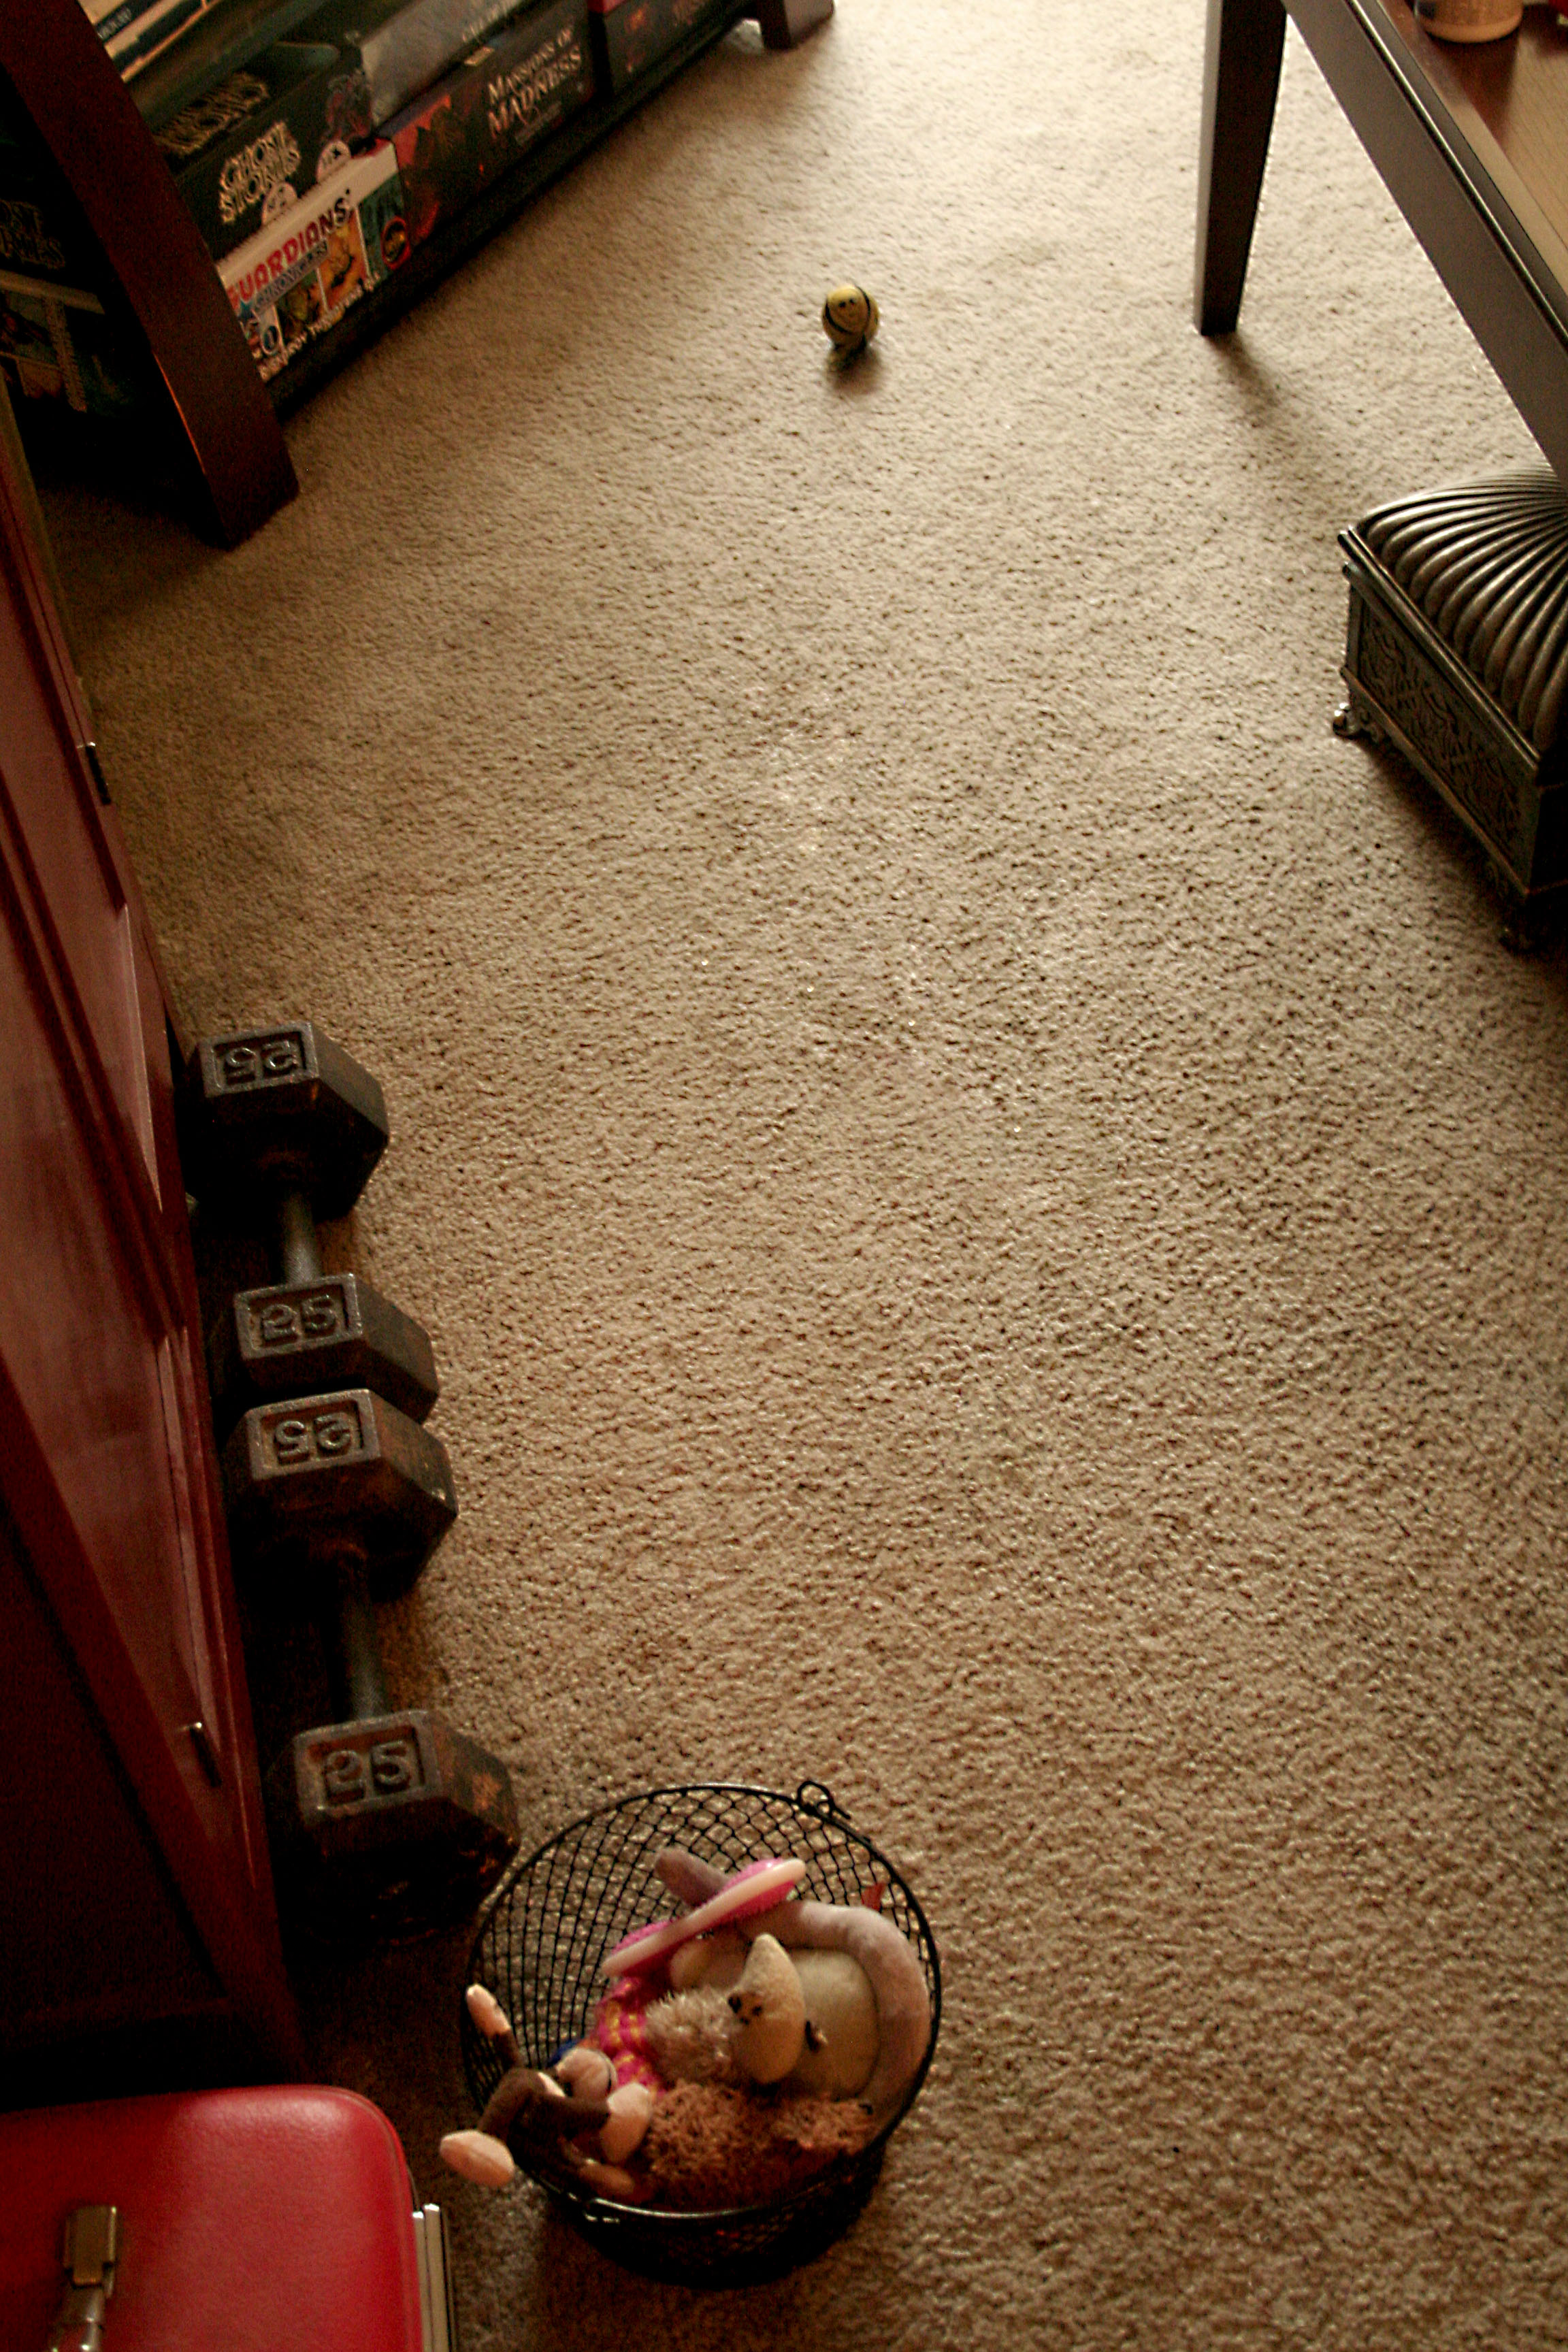 49: i pick up Bigby's toys and he immediately starts pulling them out.